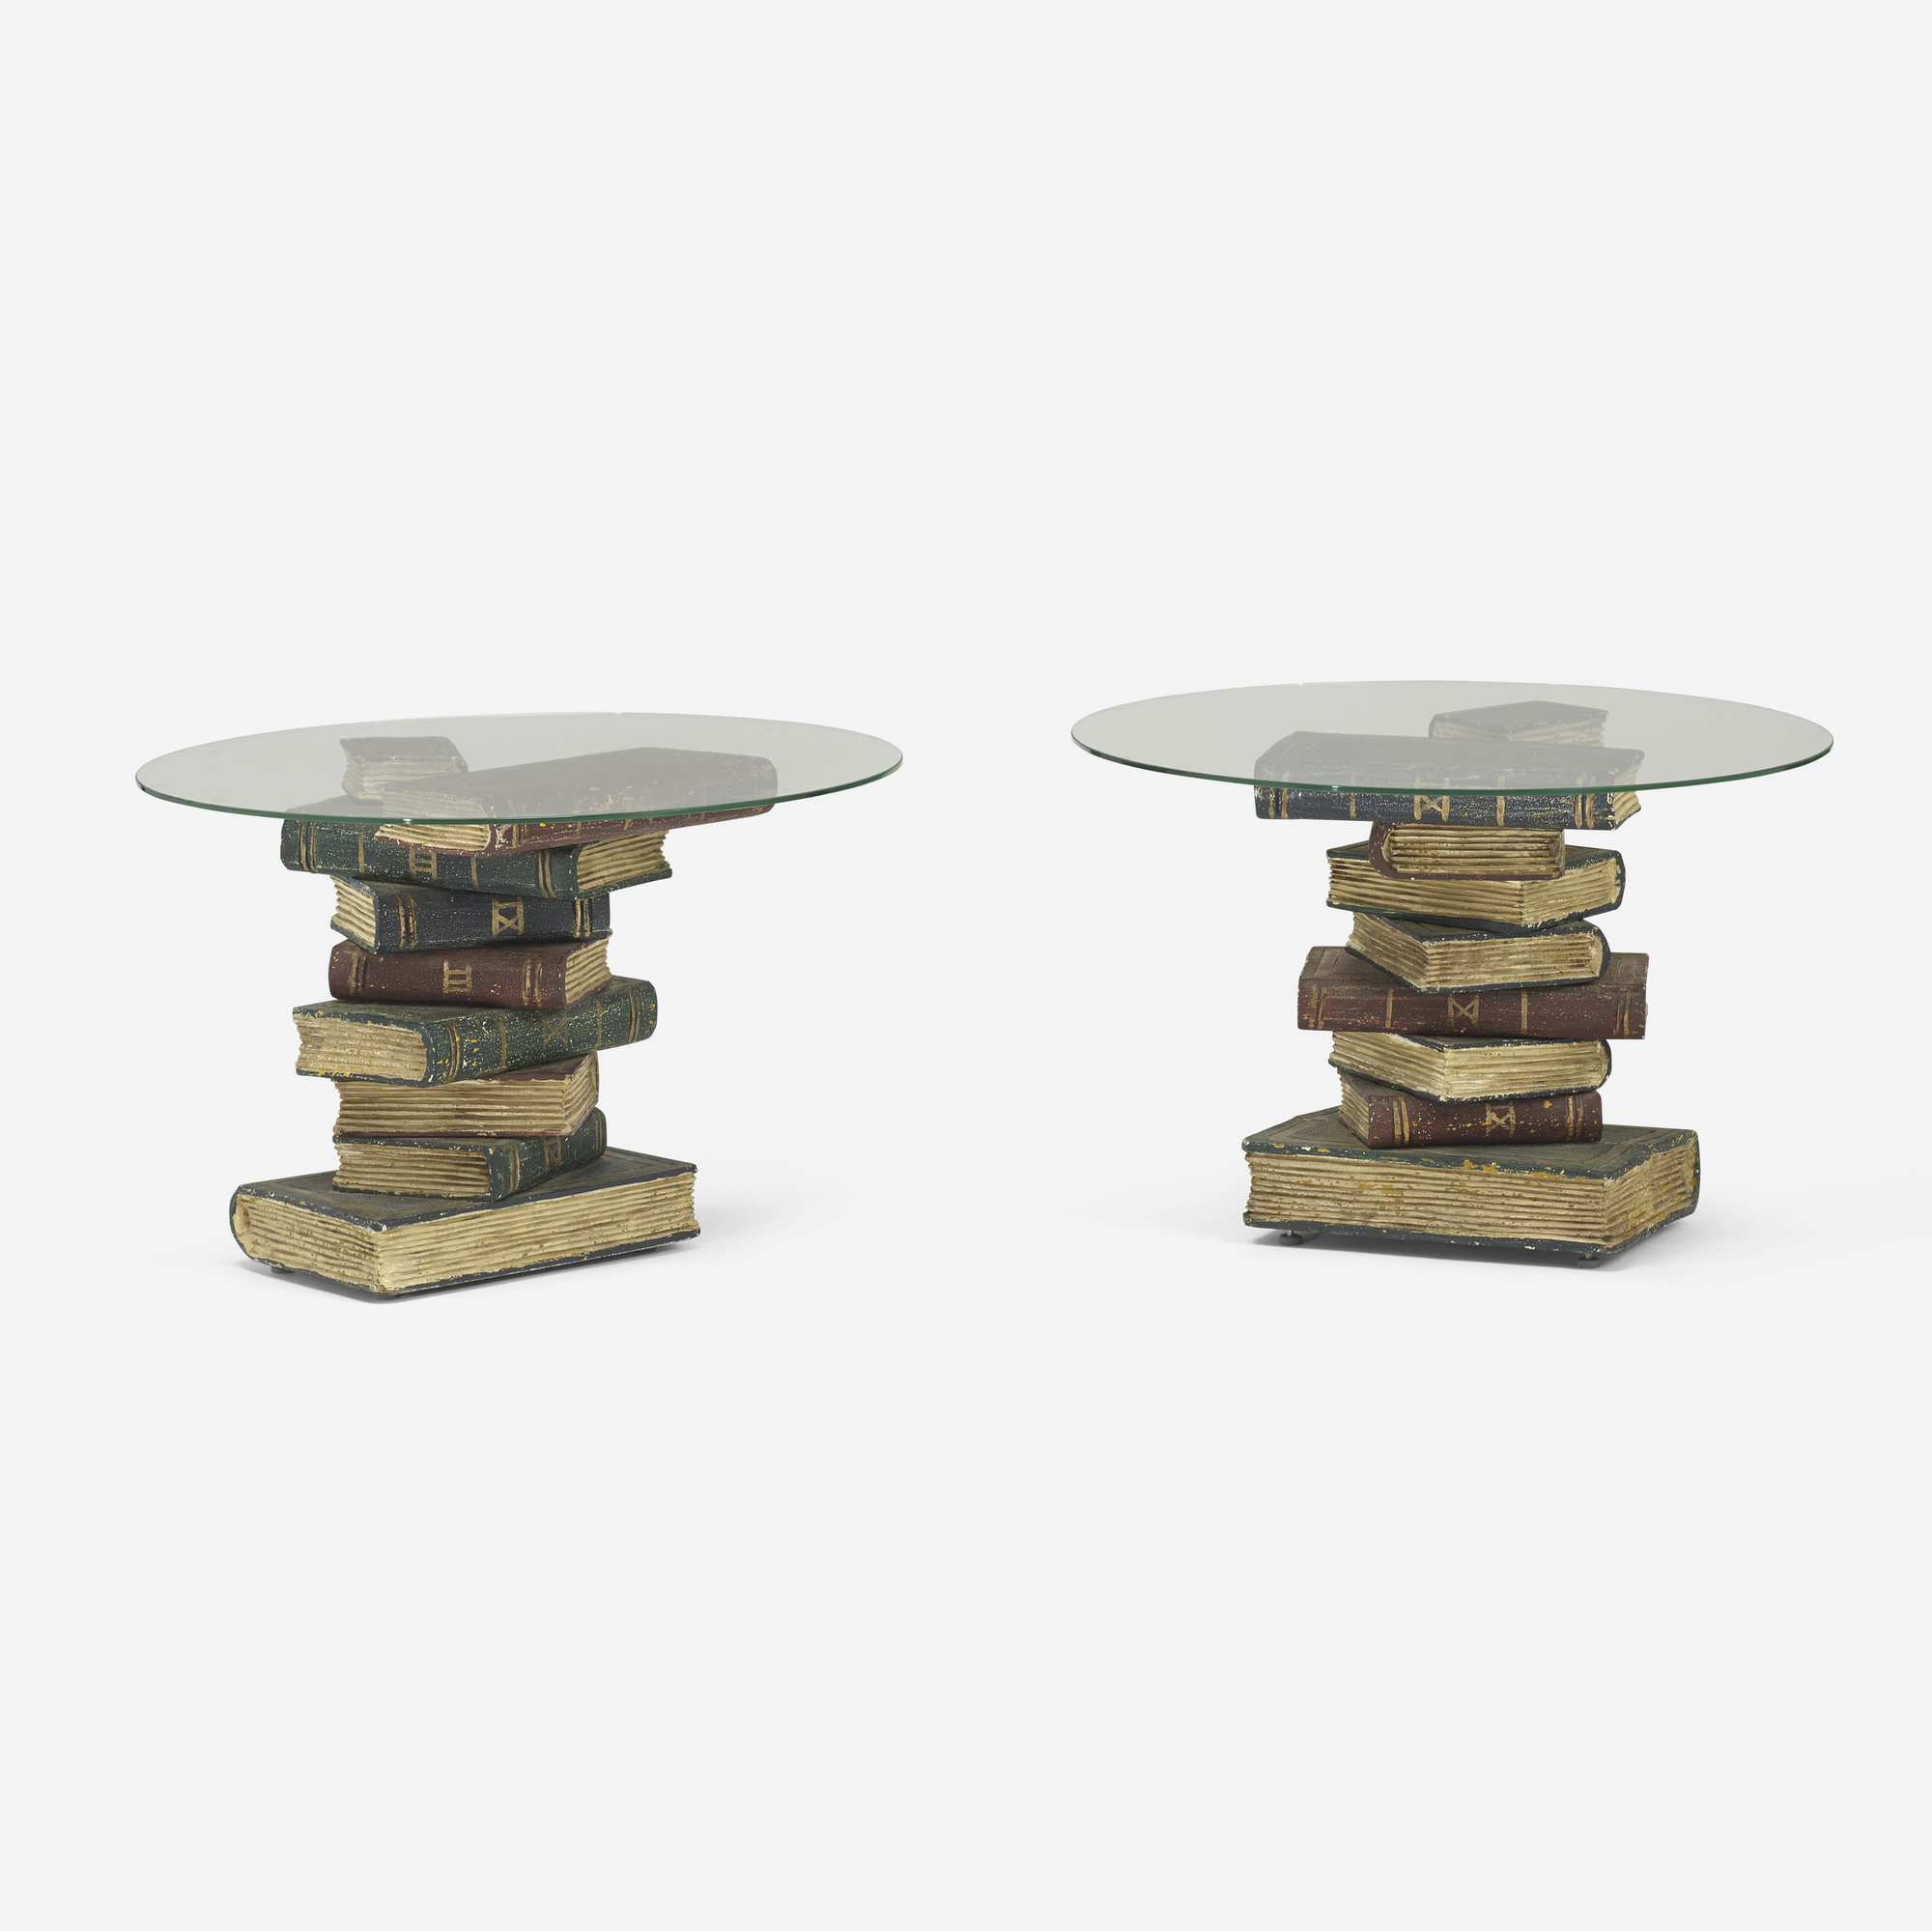 220: Maitland Smith / Occasional Tables, Pair (1 Of 4)